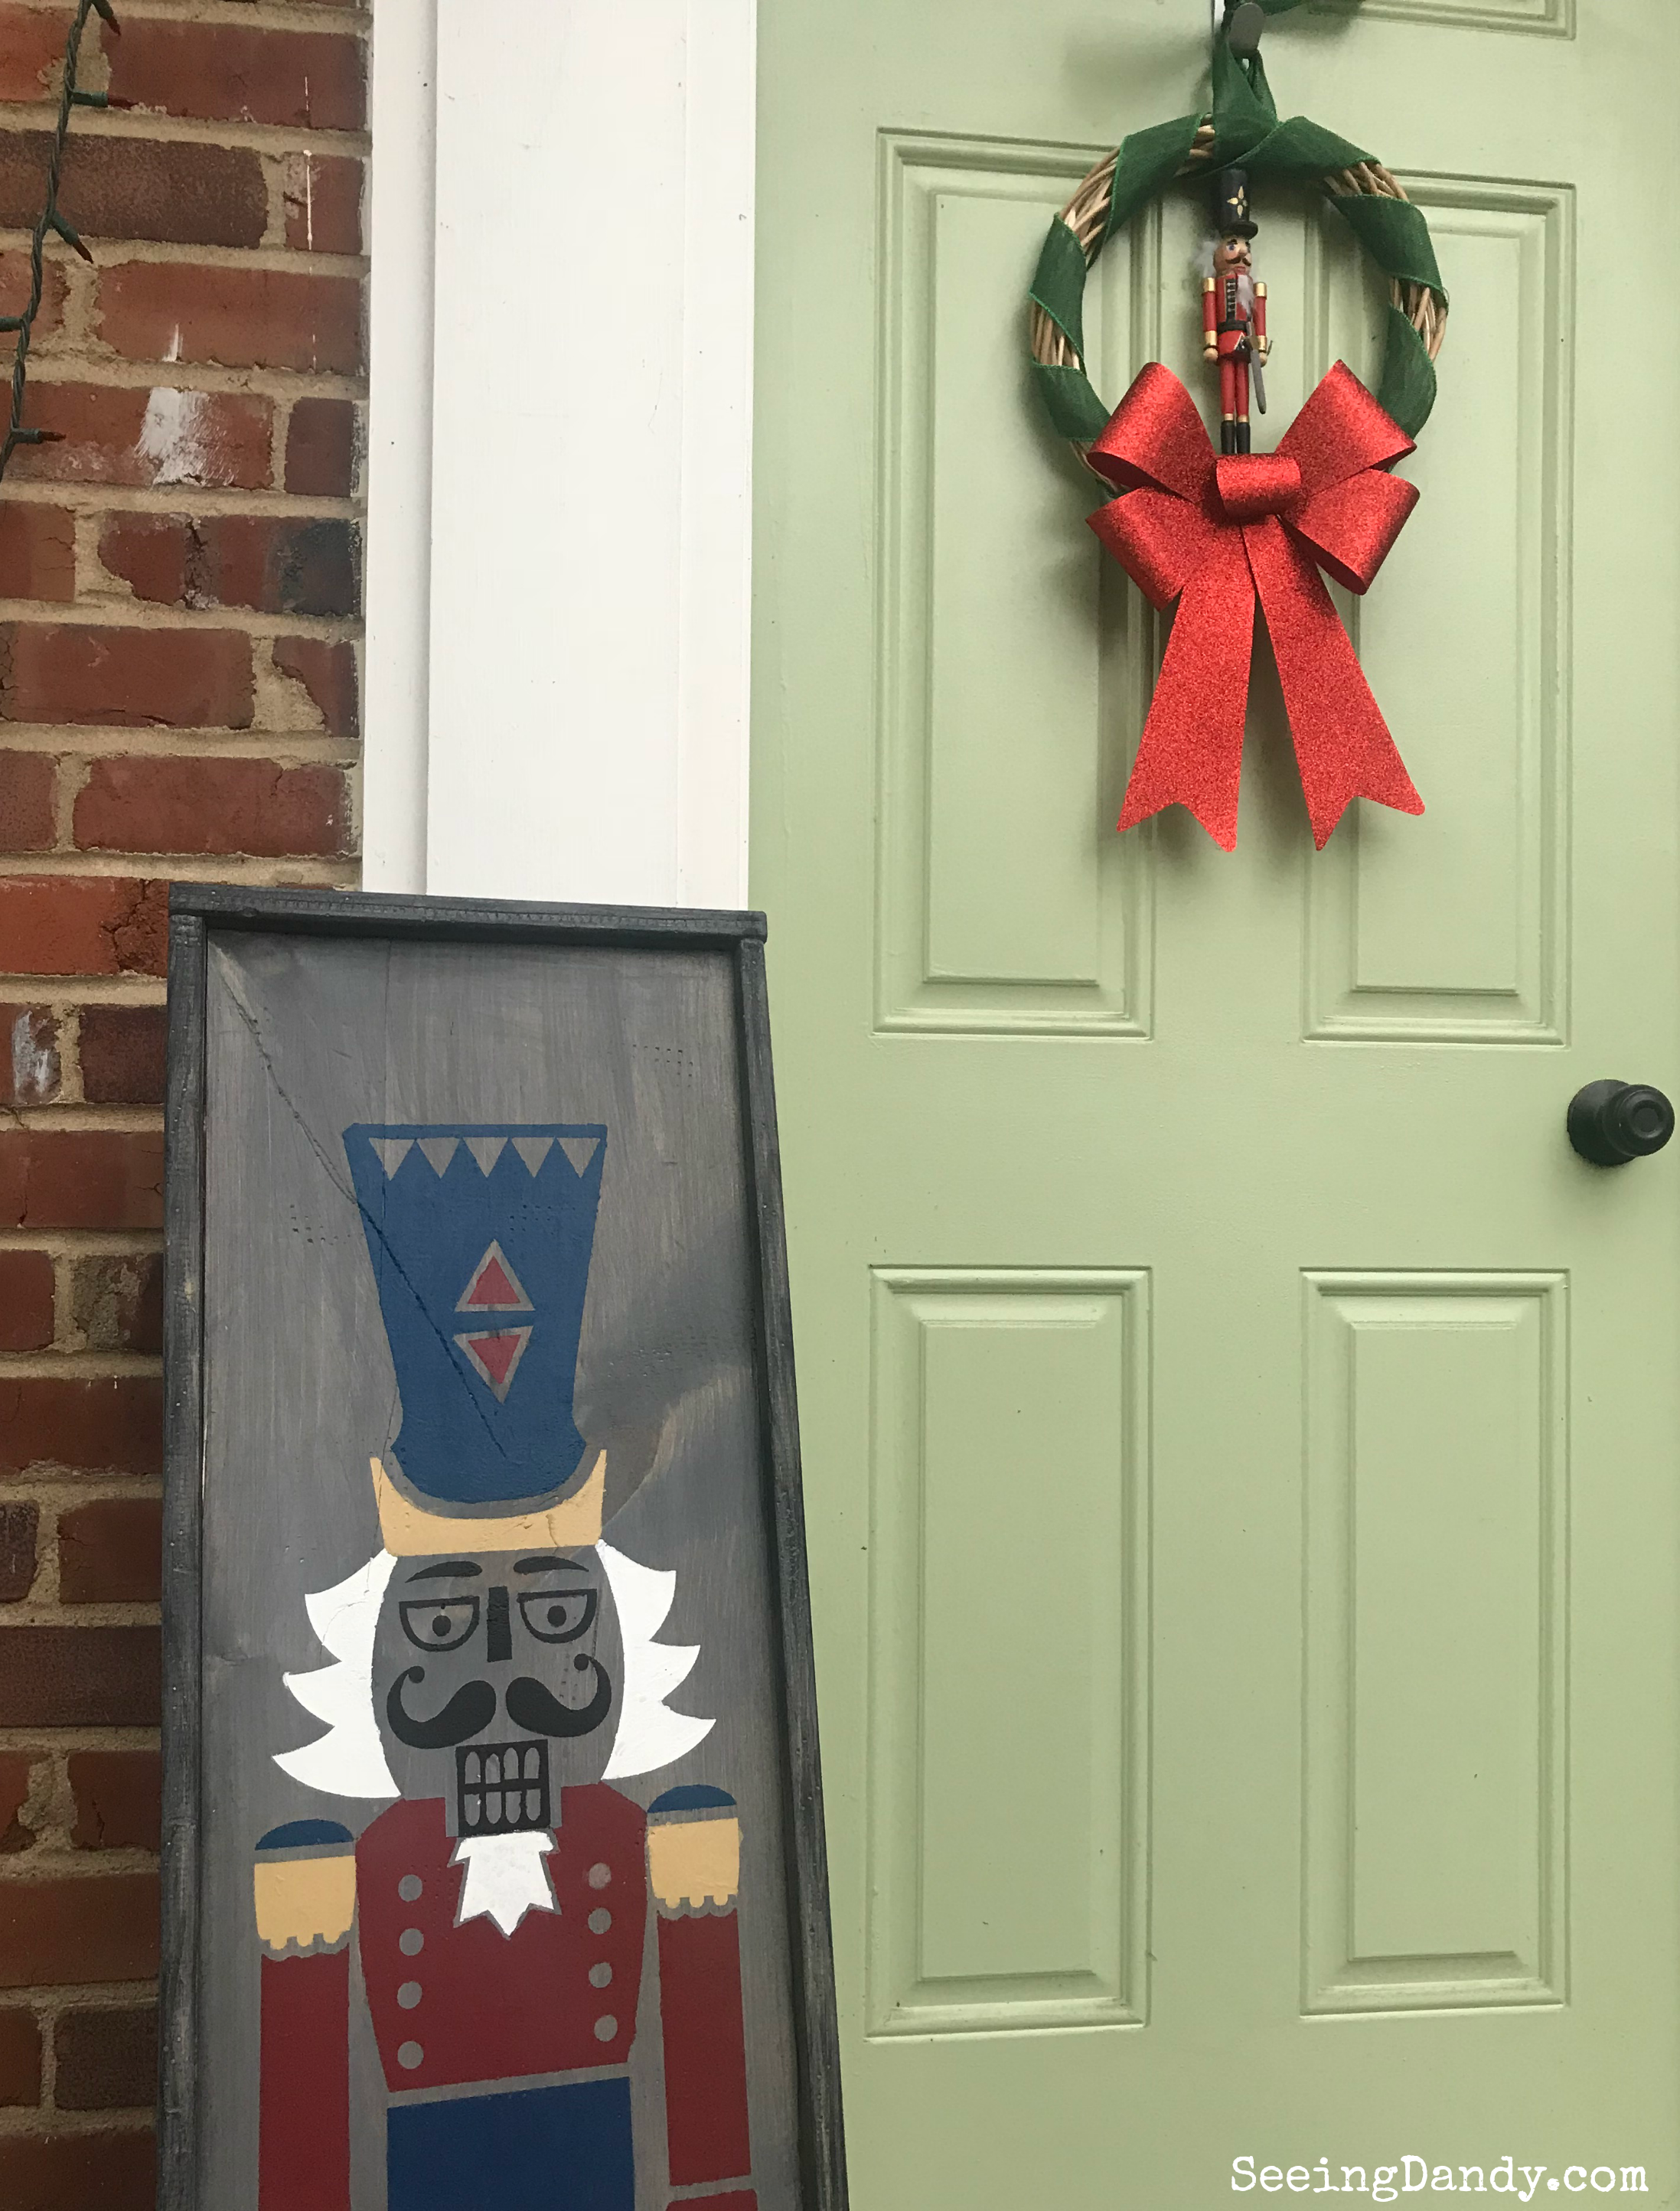 Each to make Nutcracker porch sign. Mint green front door. Brick house. Nutcracker wreath. Christmas lights.